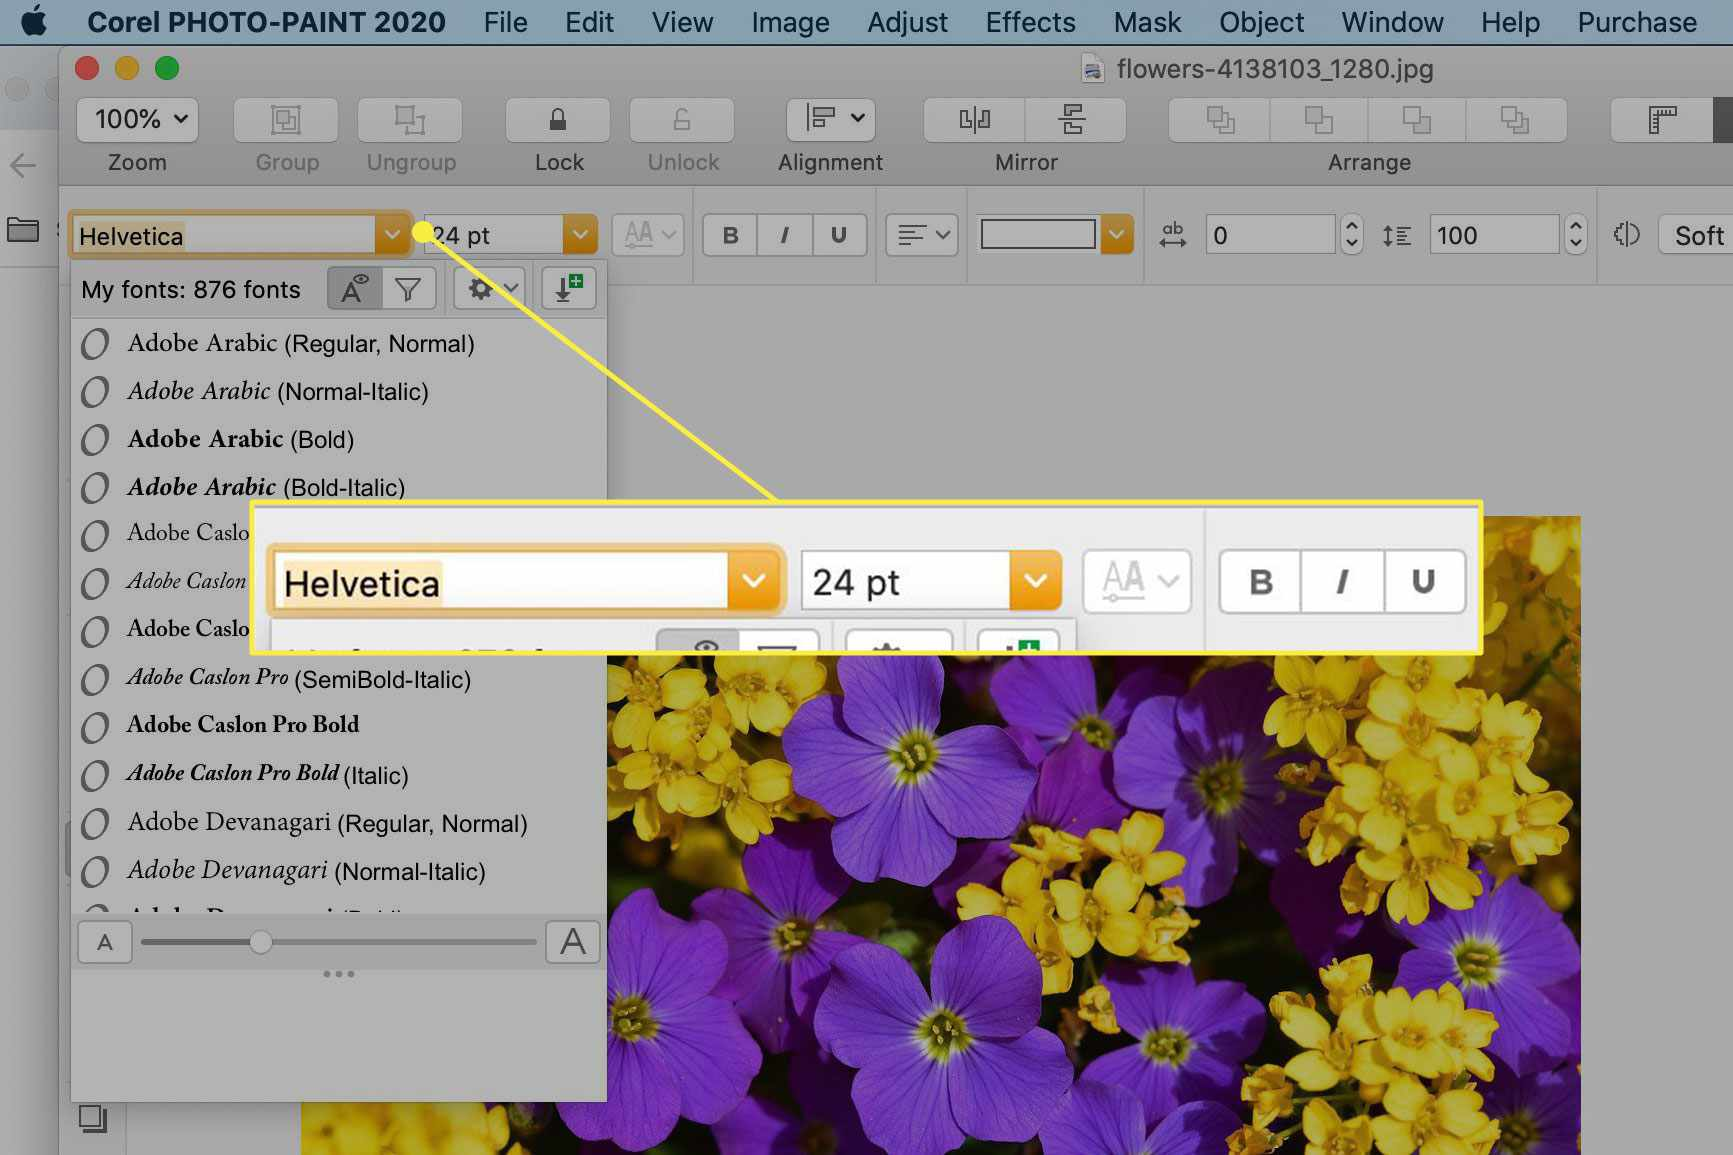 Text formatting options in Corel Photo-Paint